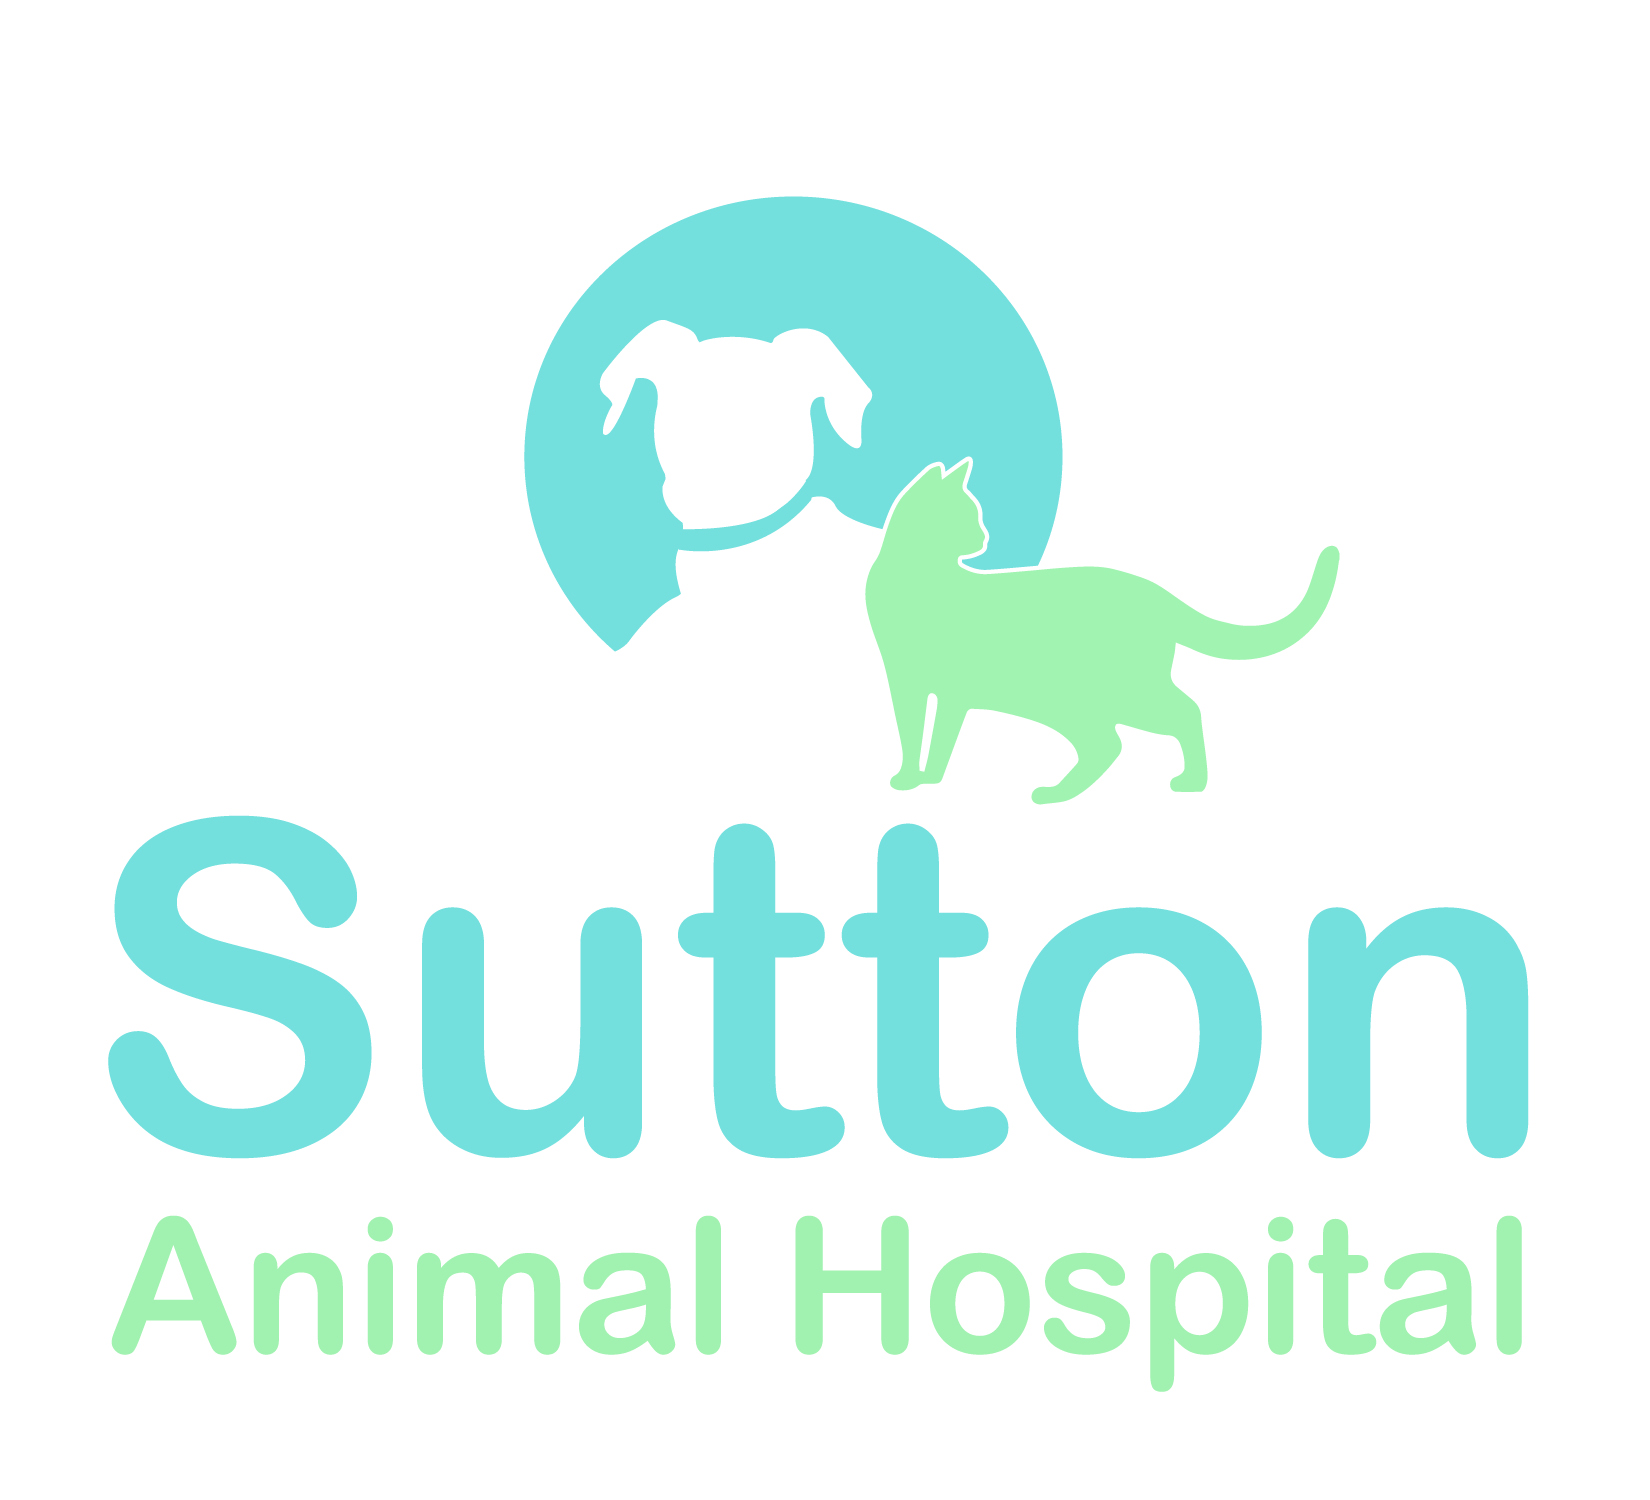 Sutton Animal Hospital